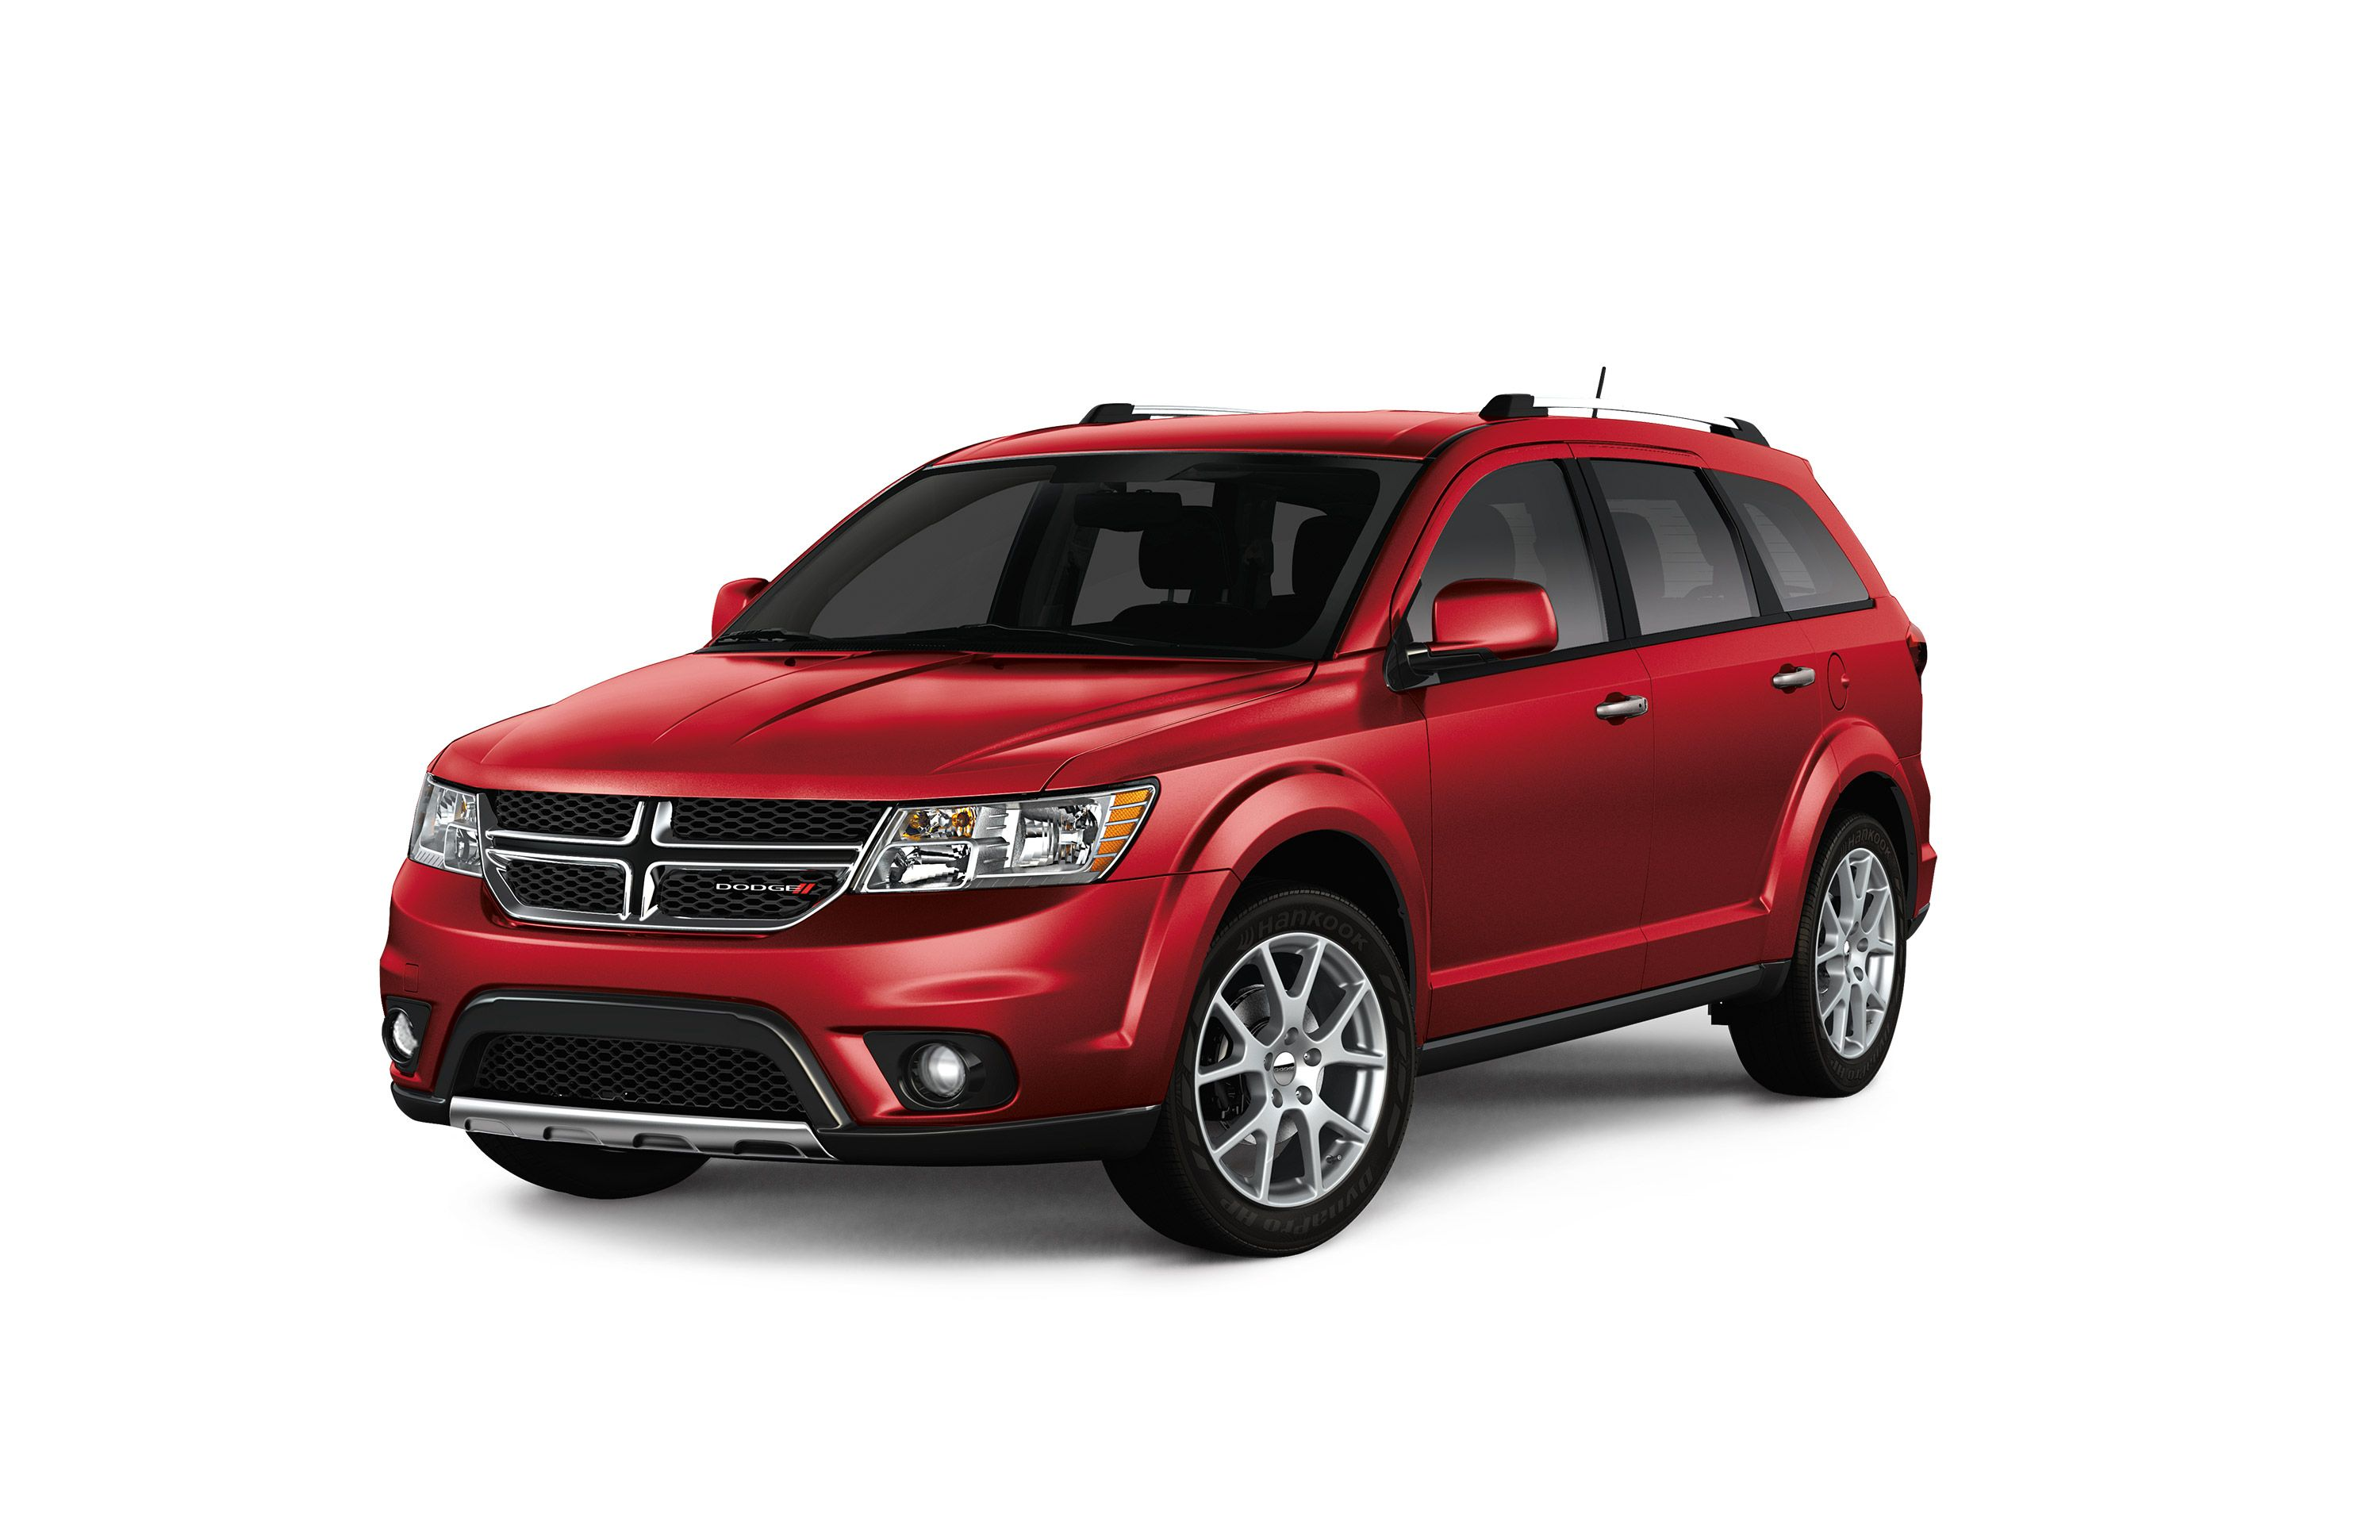 2017 Dodge Journey at Linwood Chrysler Dodge Jeep Ram in Metropolis, IL